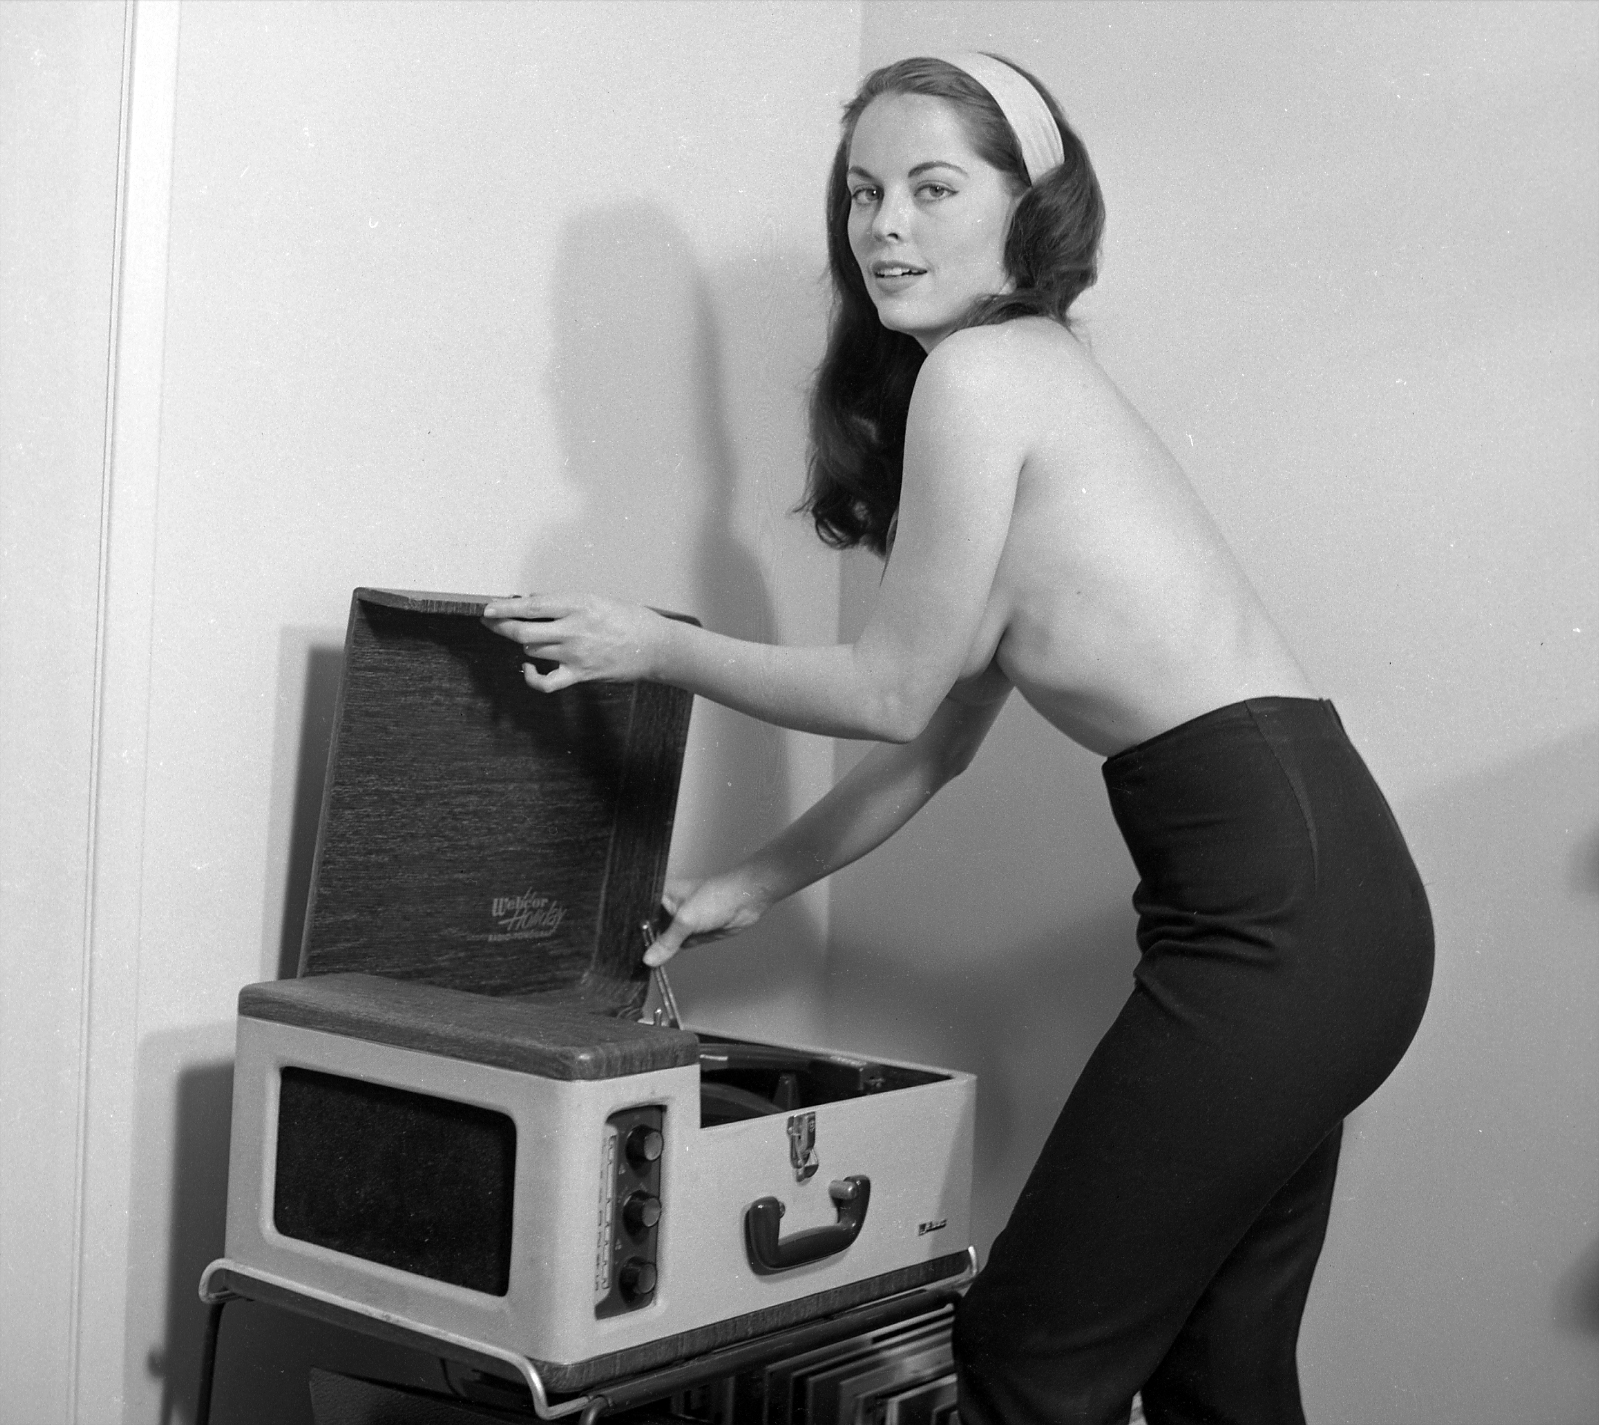 vintage-ladies-and-records-31